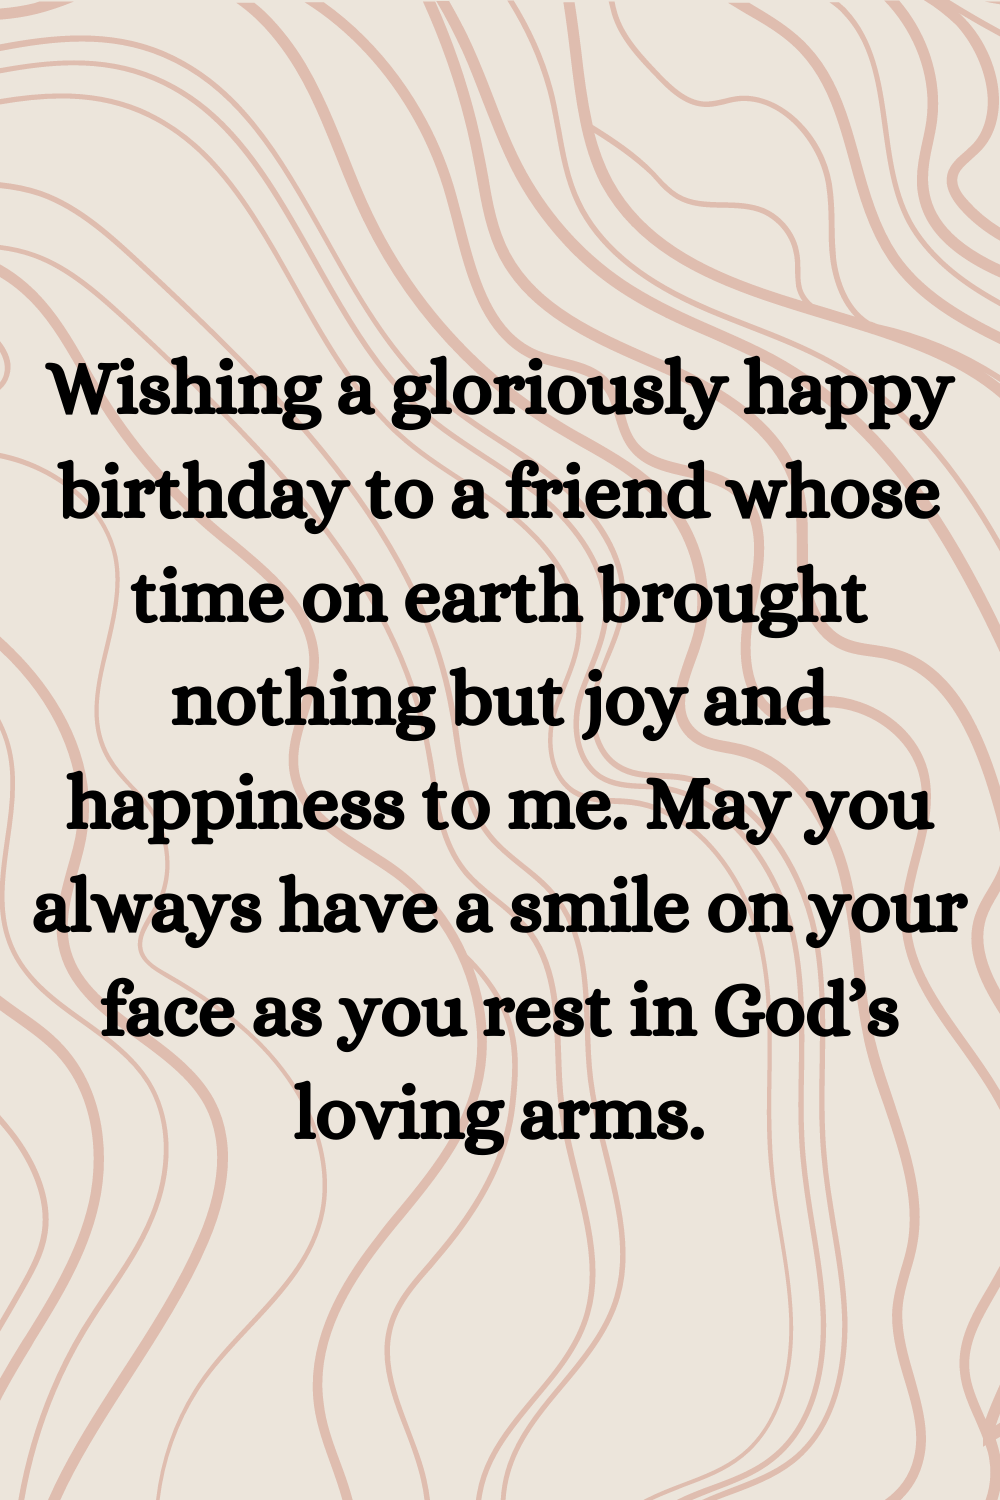 Deceased Friend Quotes On Birthday in Heaven